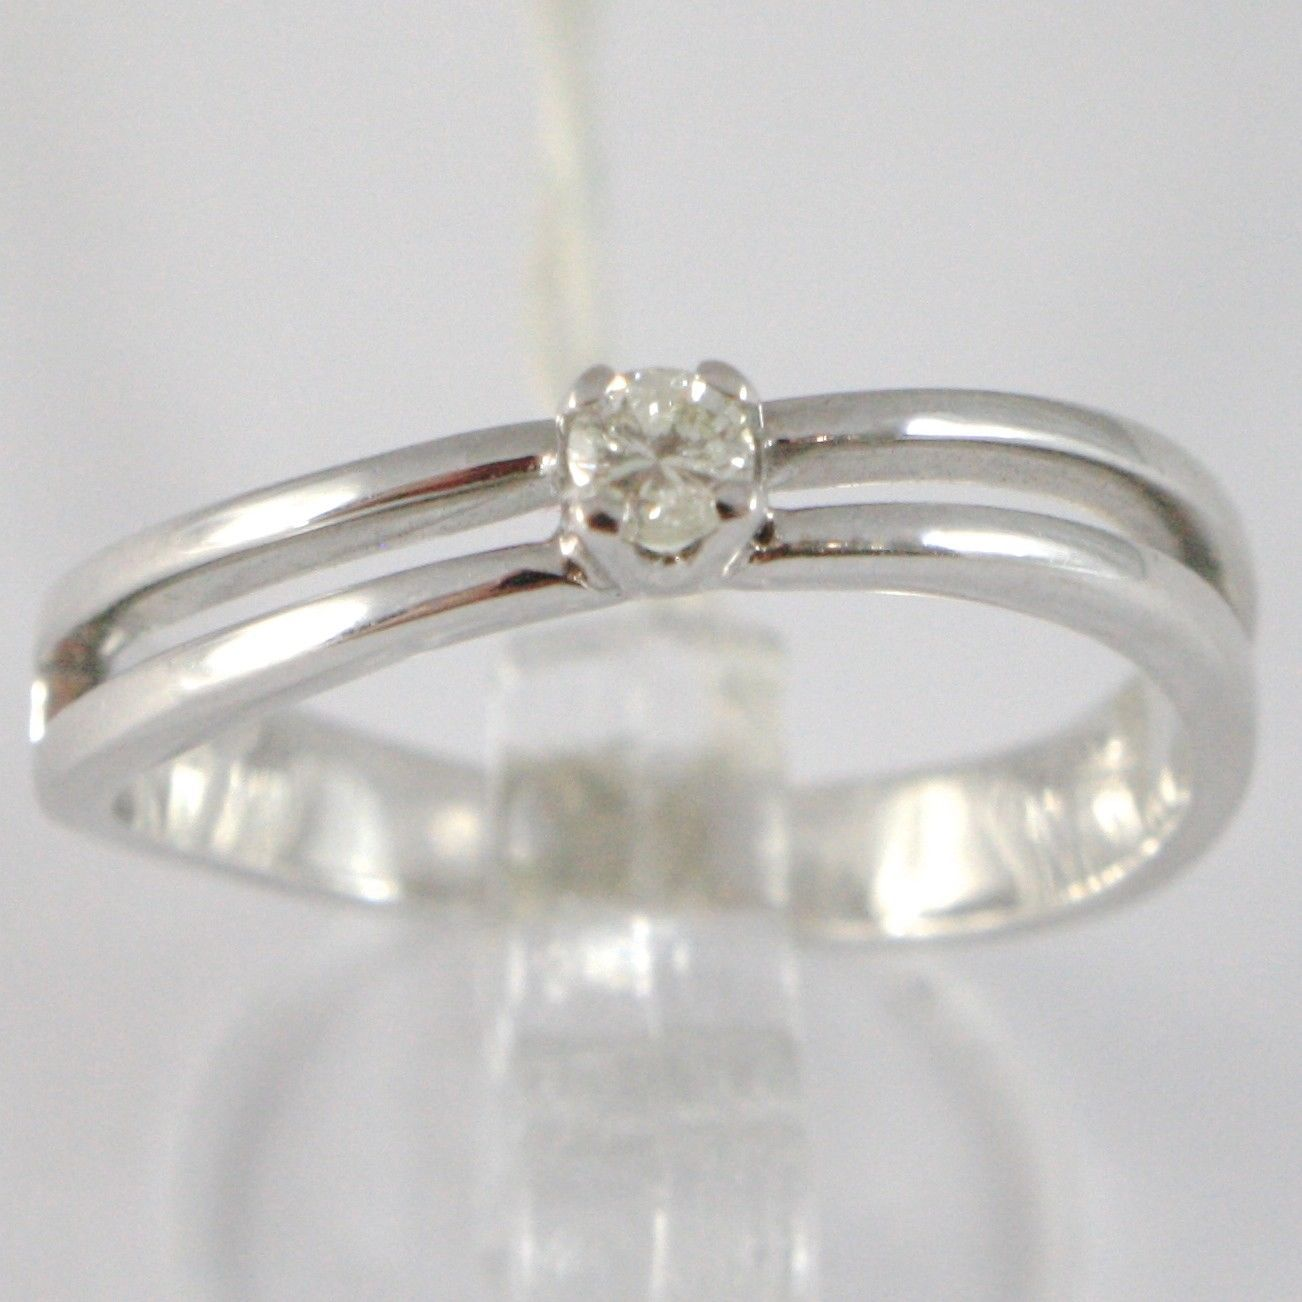 ANILLO DE ORO BLANCO 750 18 CT,SOLITARIO,BINARIO SQUARED,DIAMANTE,QUILATES 0.09